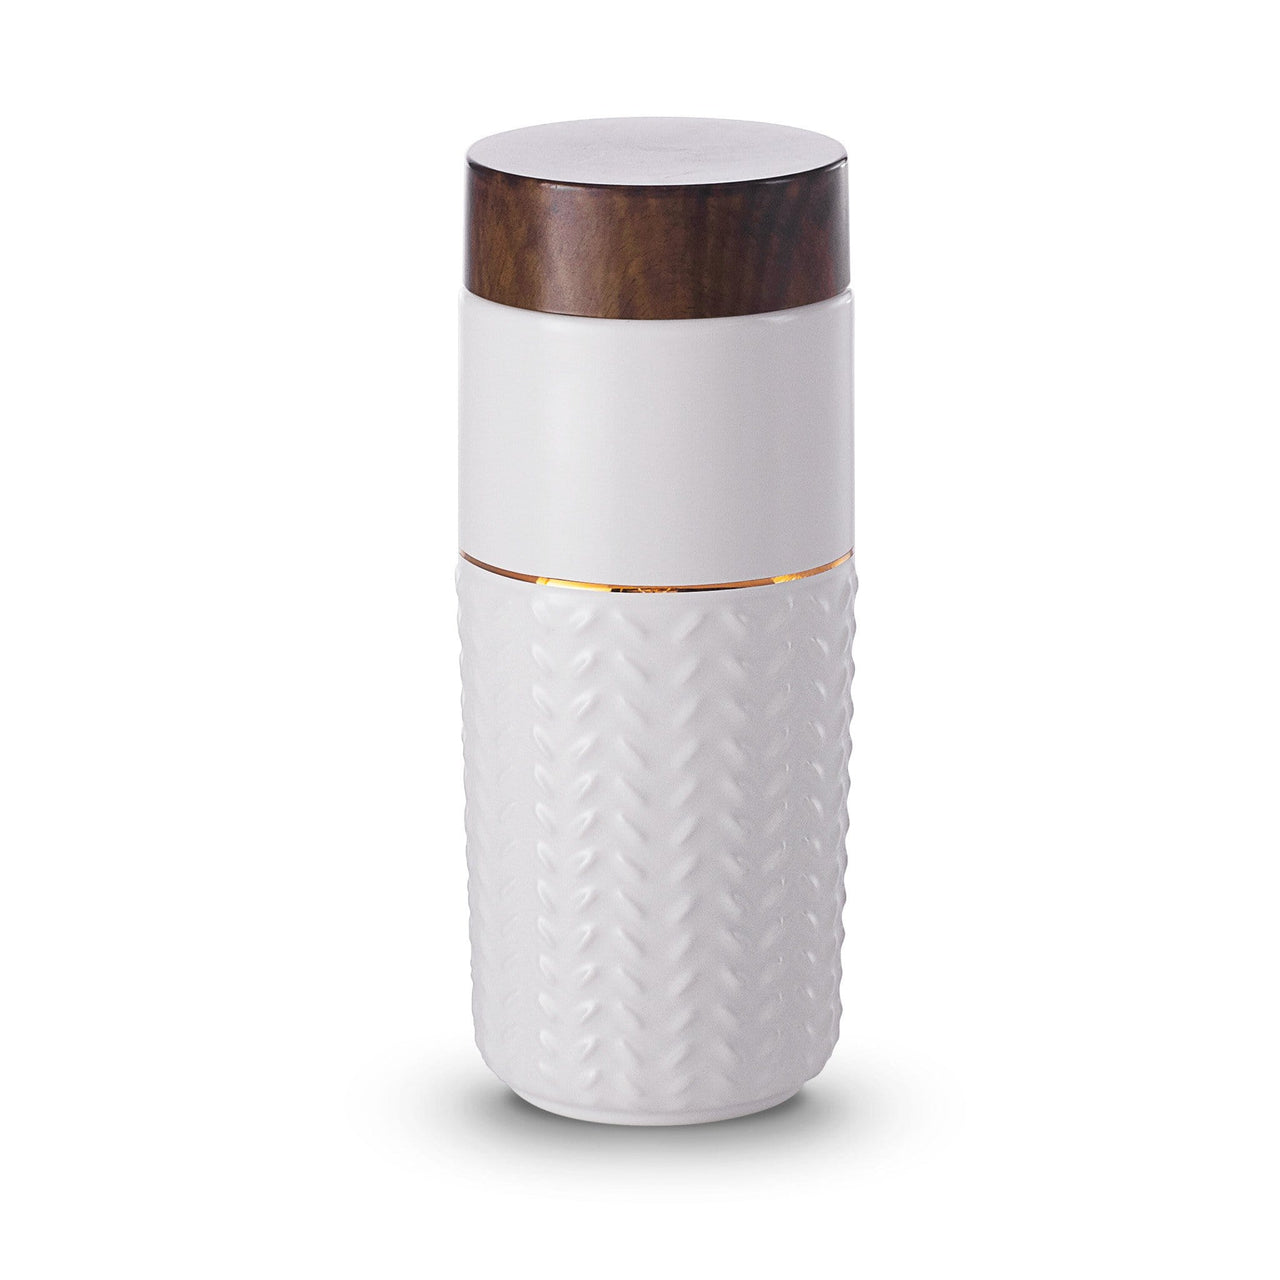 Acera Liven Flasks & Water Bottles White + Golden Line (Hand Painted) One-O-One Flying to the Clouds Gold Tumbler